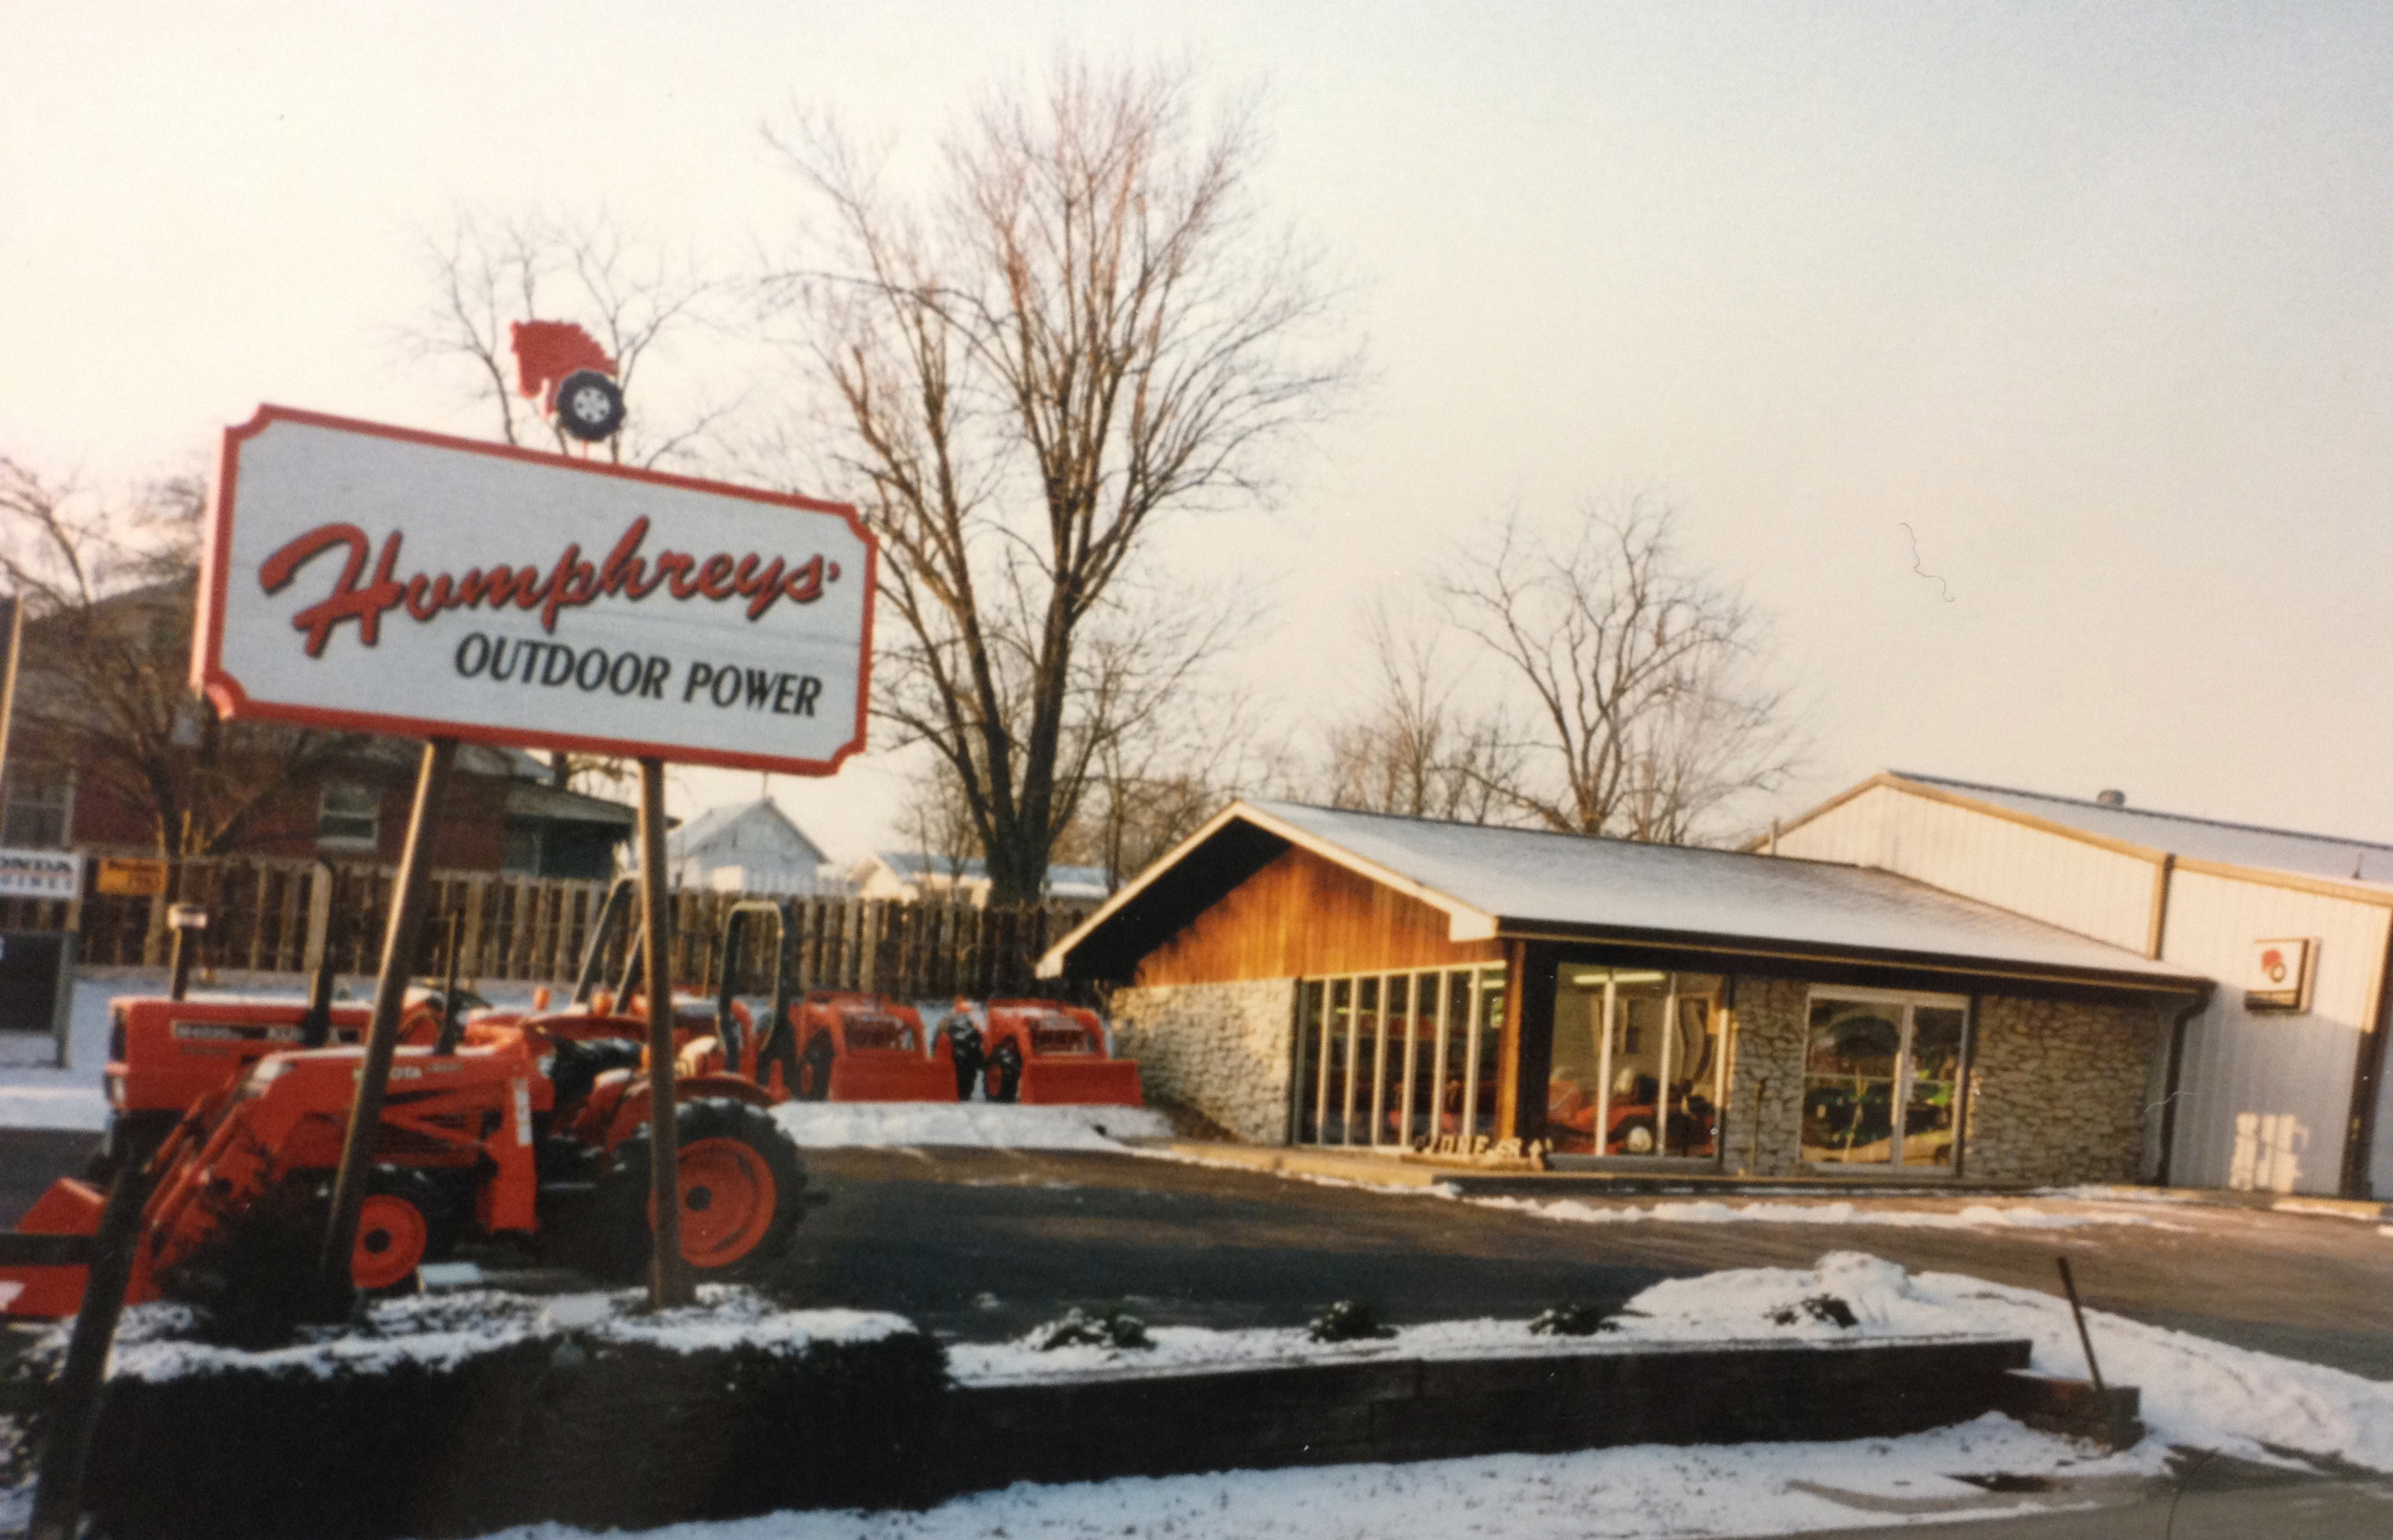 In the early 90s,  Humphreys' decided to change their name so they  could focus on a more broad range of brands. Enter Humphreys' Outdoor Power.